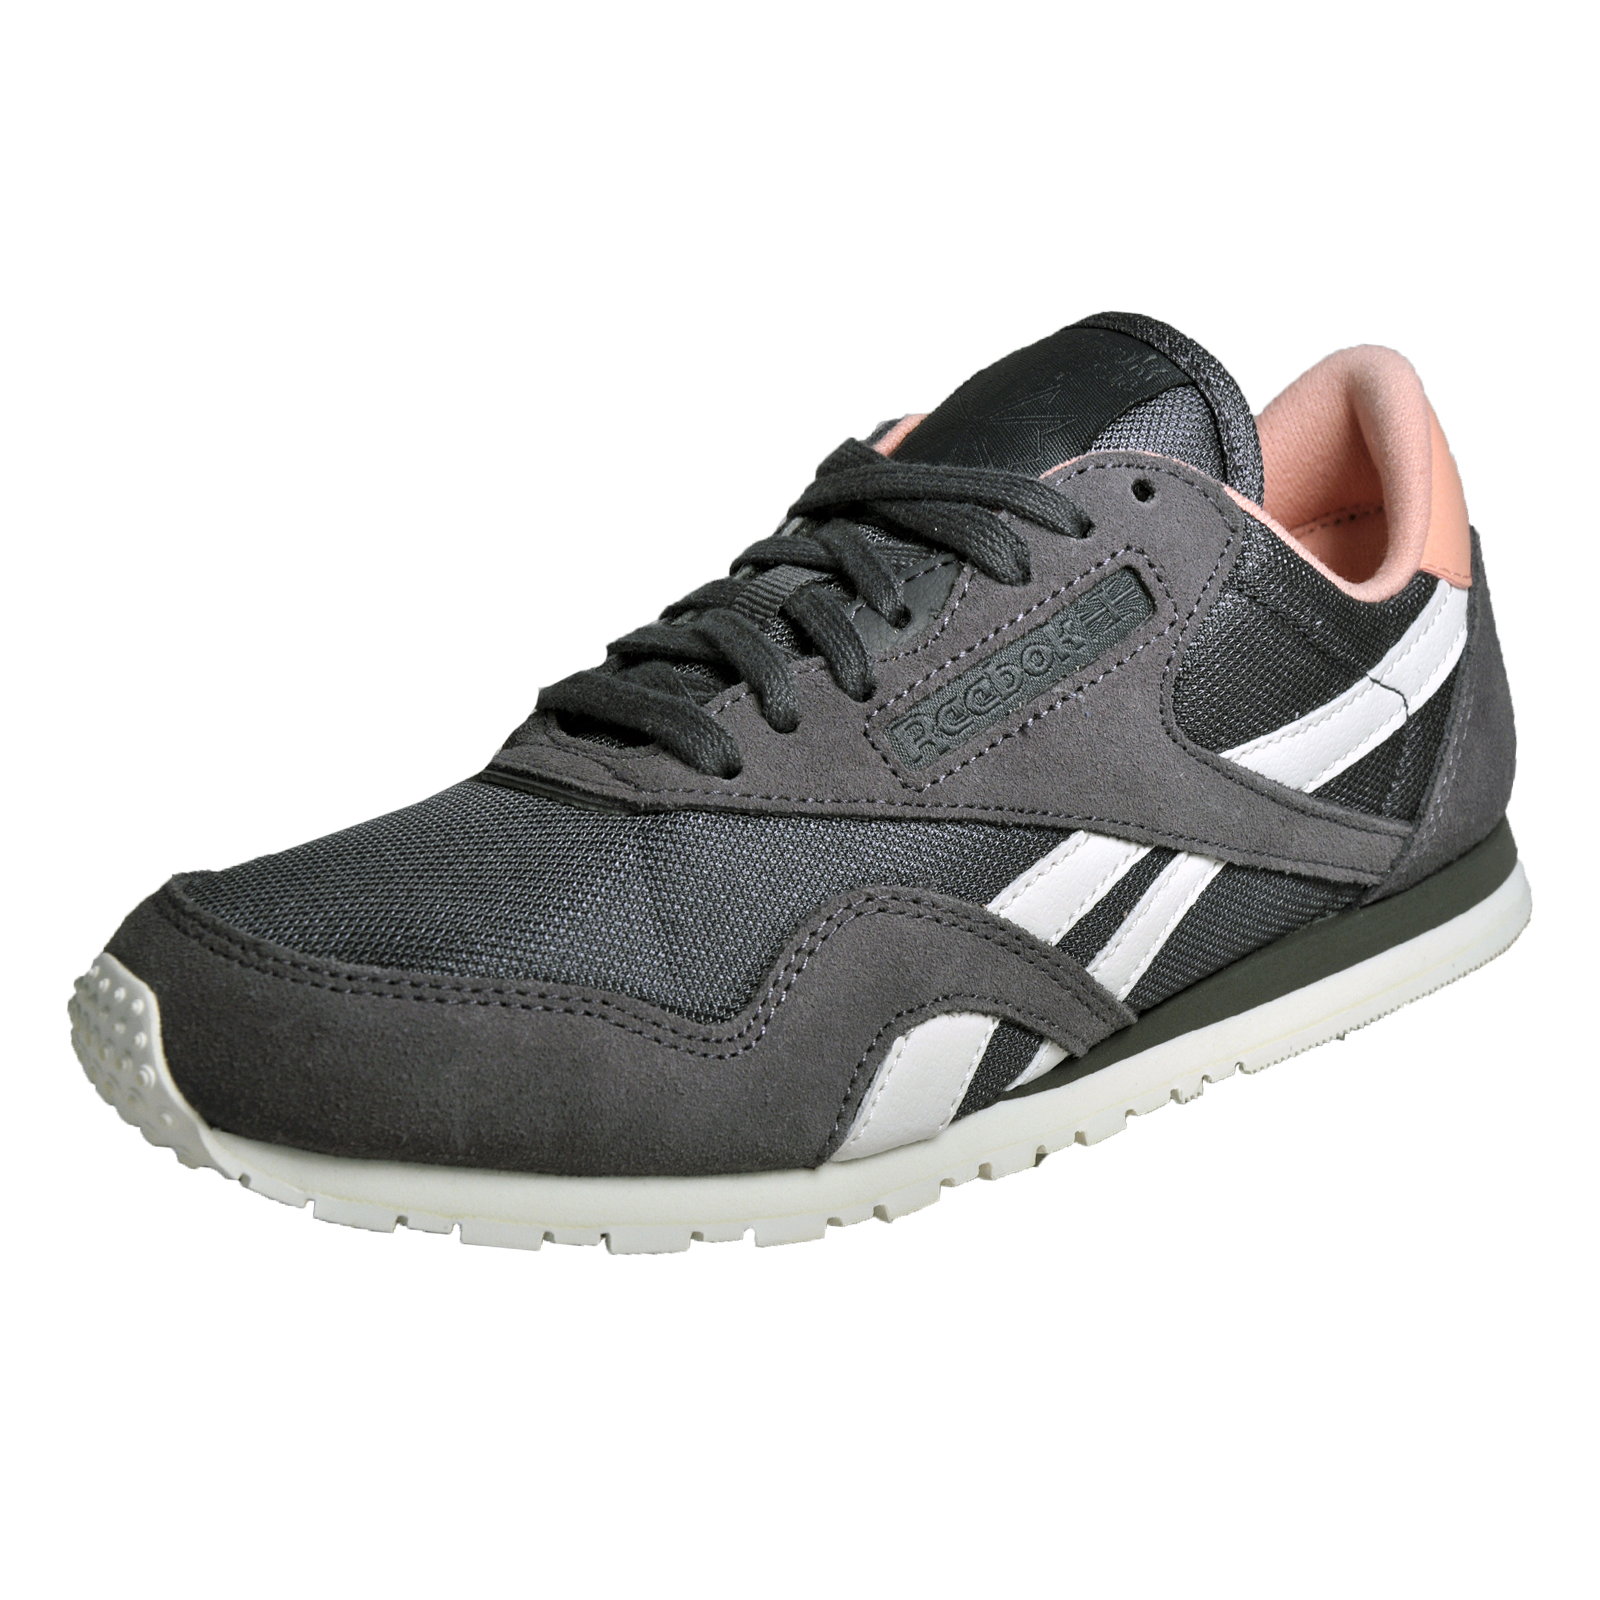 eb1a8c1bed3 Details about Reebok Classic Nylon Slim Core Women s Casual Retro Trainers  Grey